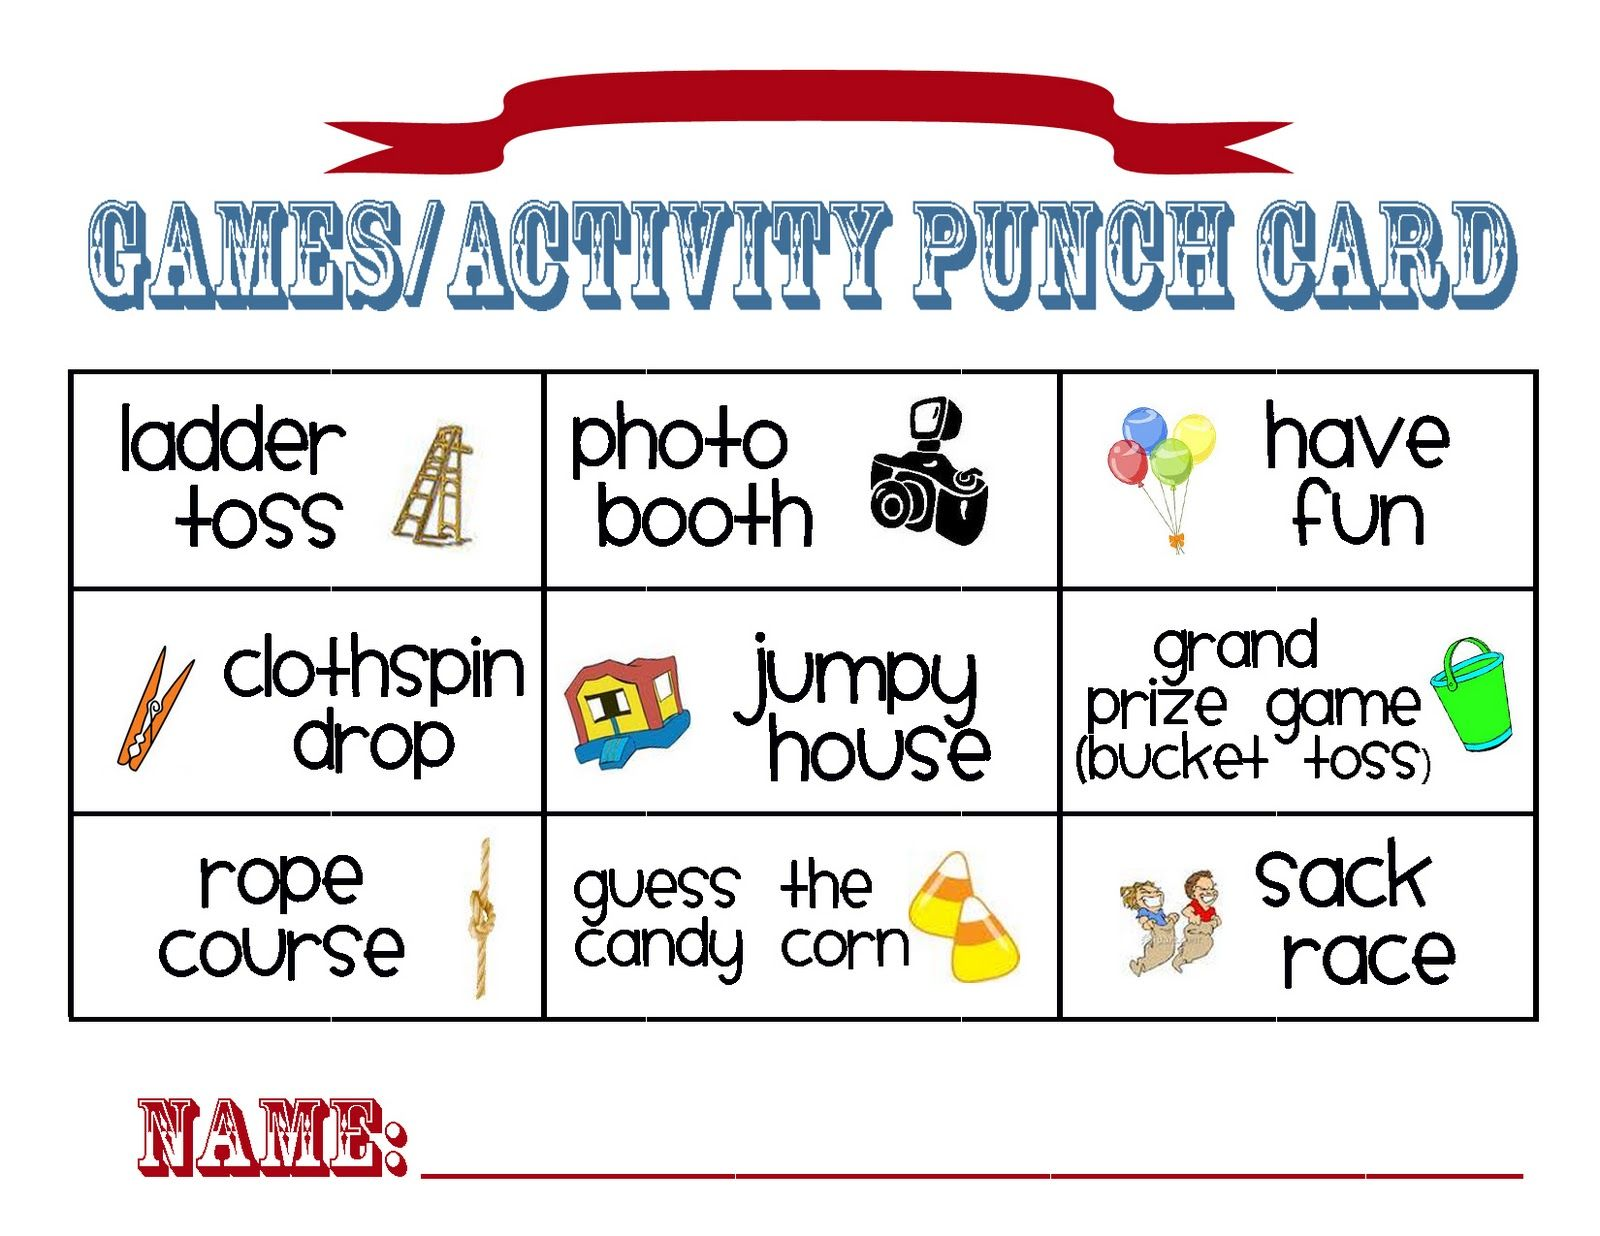 Carnival Punch Card Google Search Carnival Games For Kids Diy Carnival Games Kids Carnival